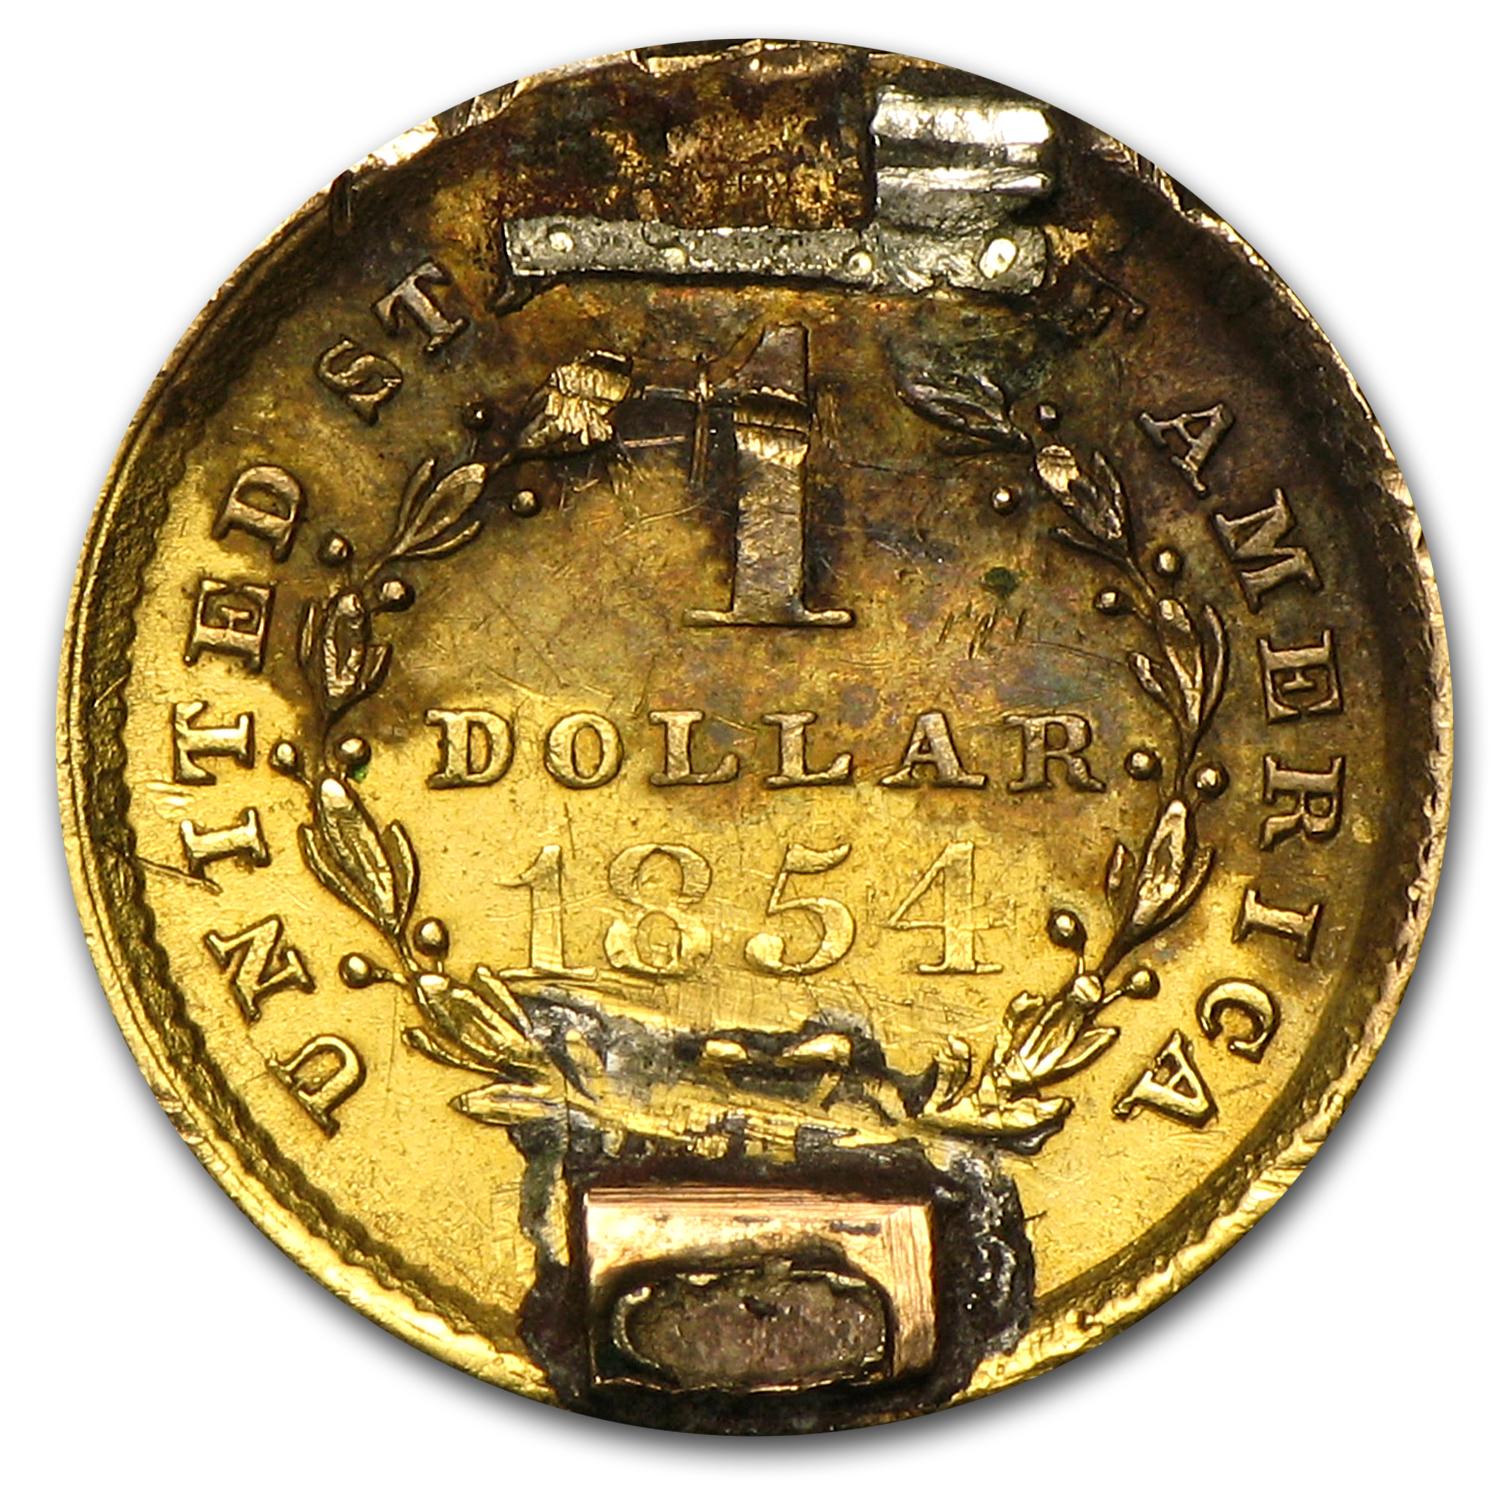 $1.00 Liberty Gold-Type I - 1854 Love Token - E H